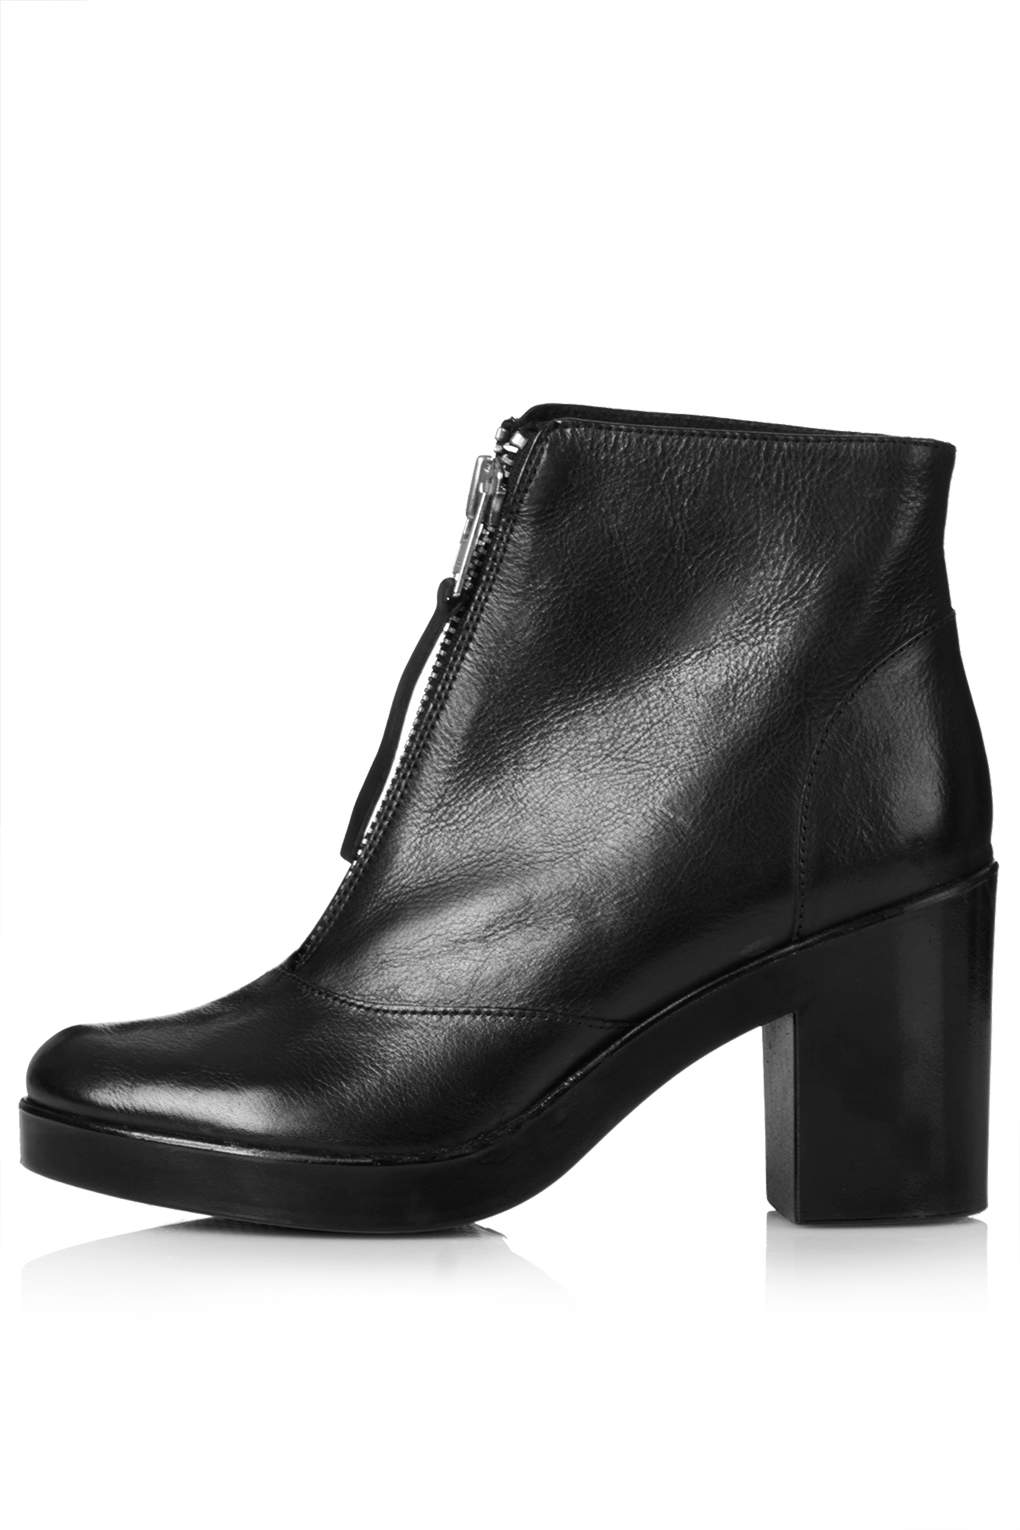 MAGIC Front Zip Boots - Ankle Boots - Boots - Shoes